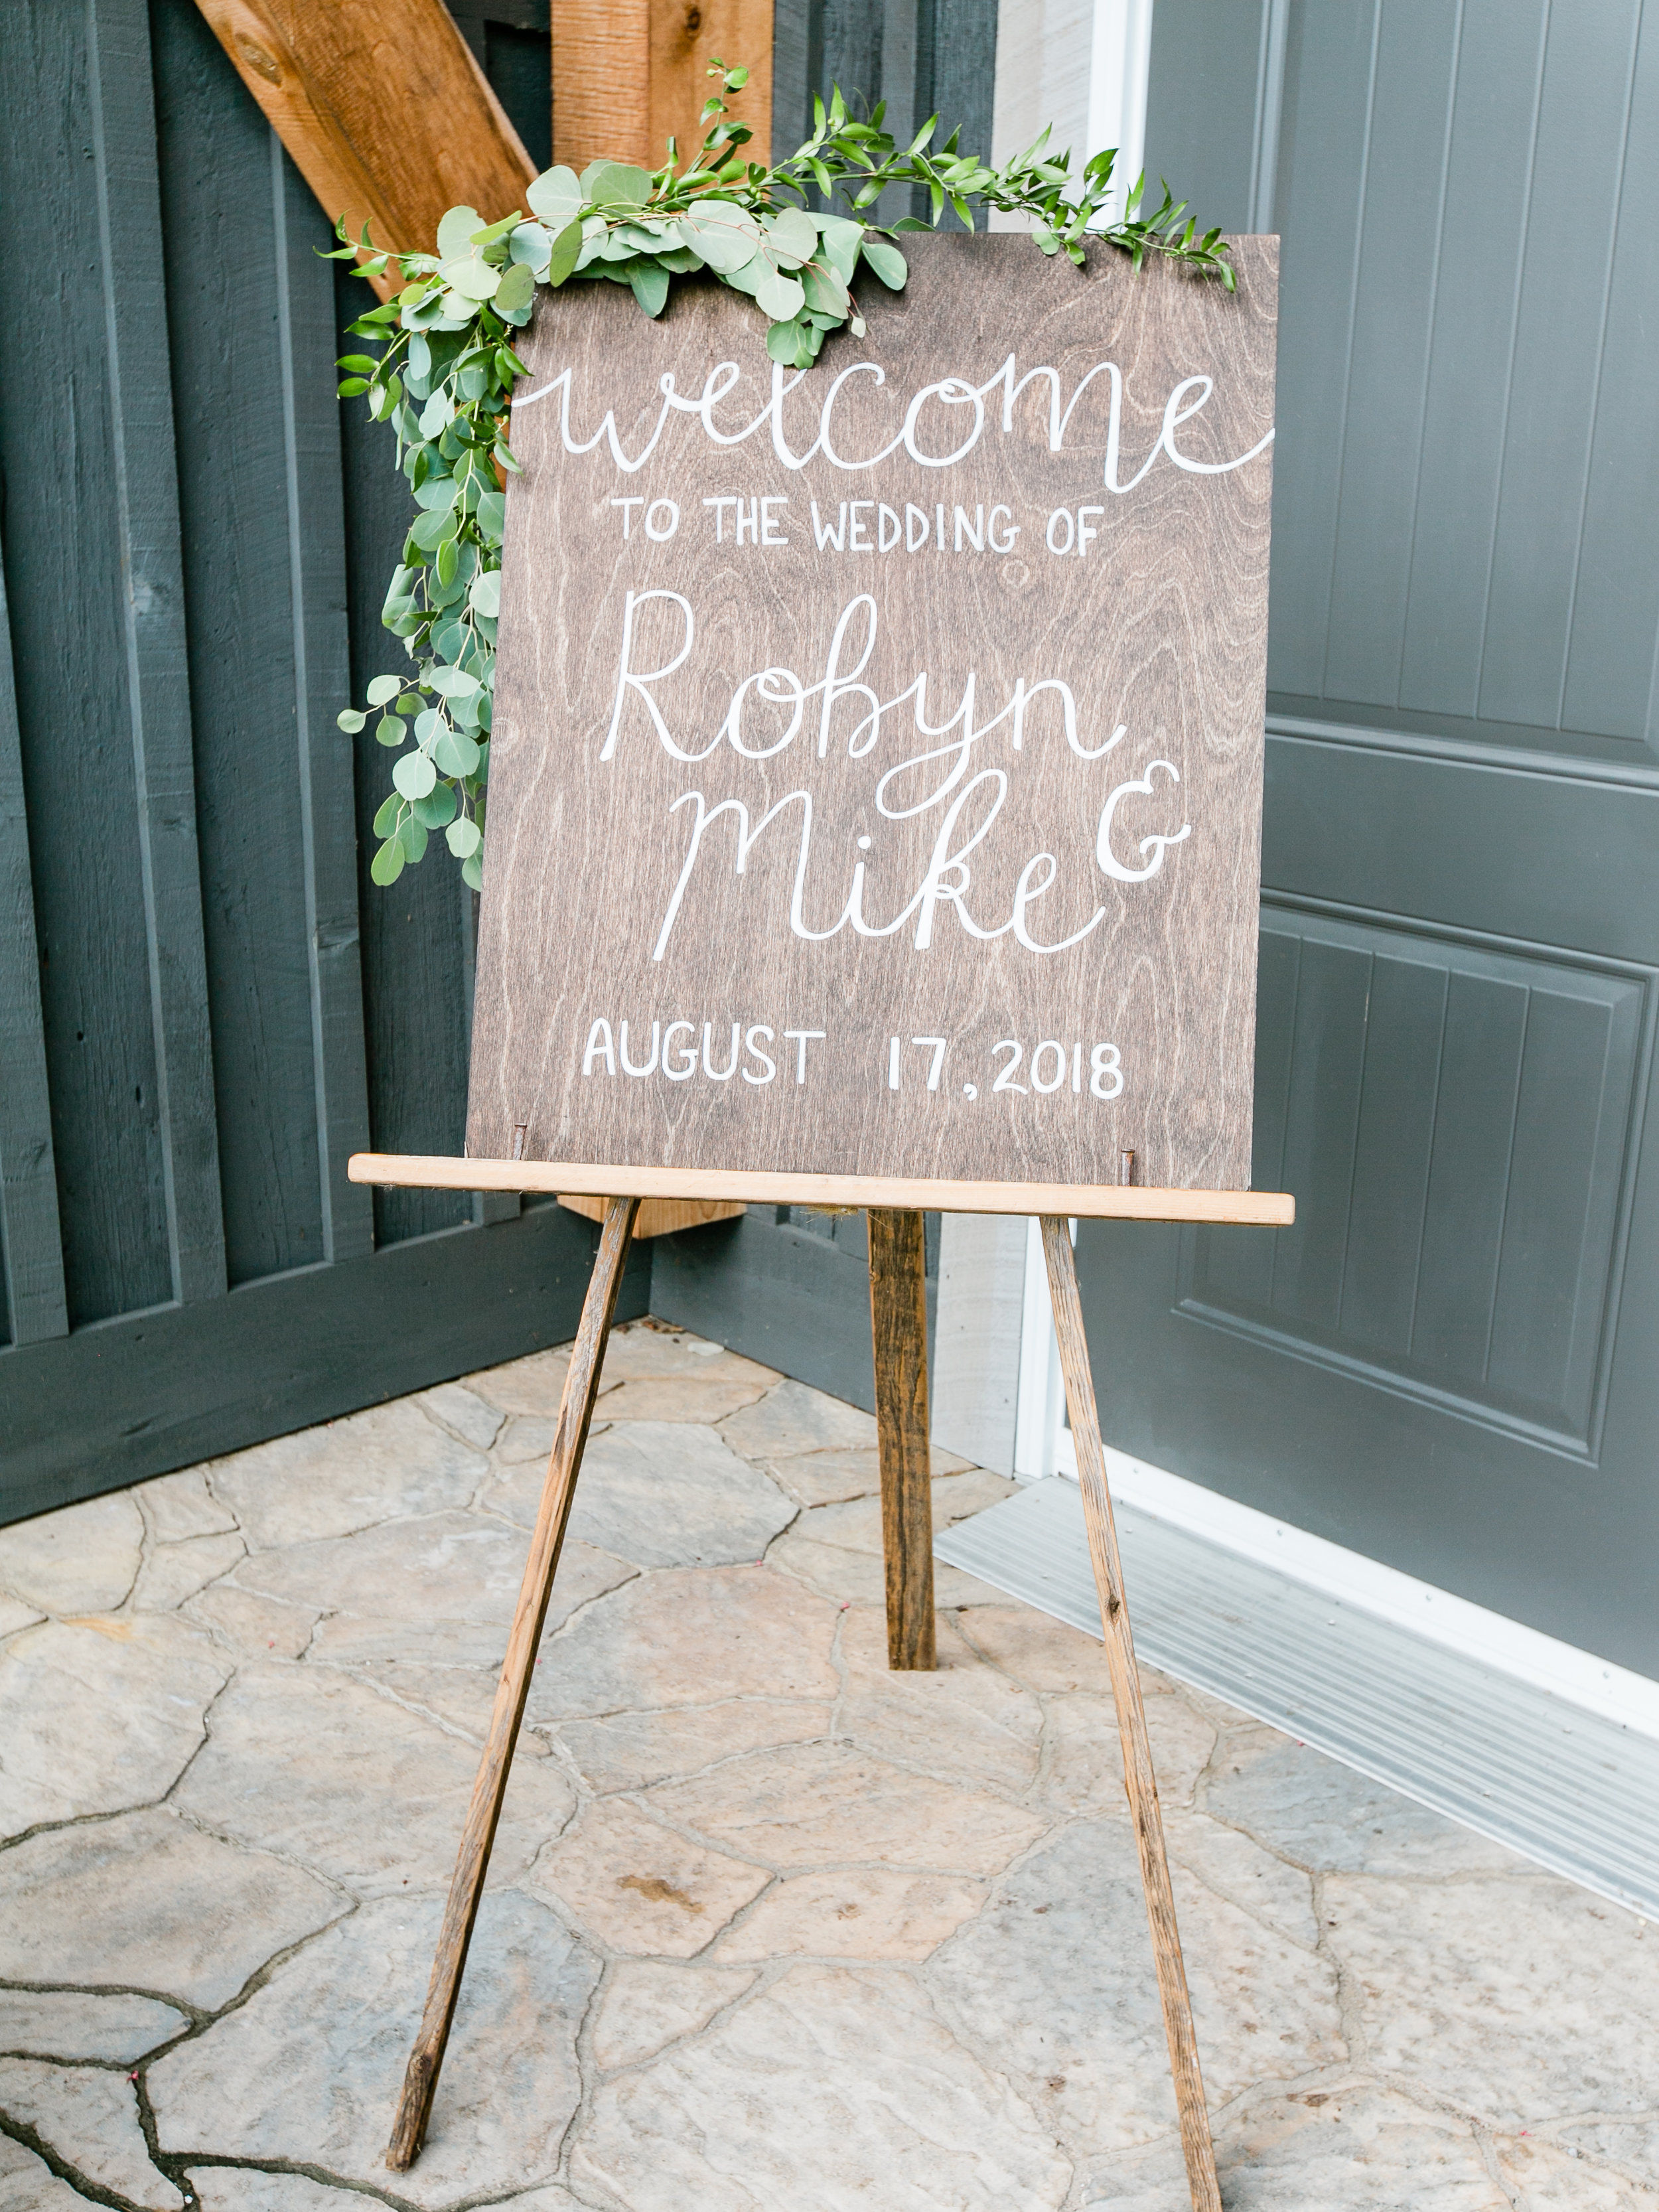 RobynMikeWedding_Evermore__StephanieMasonPhotography-183.jpg